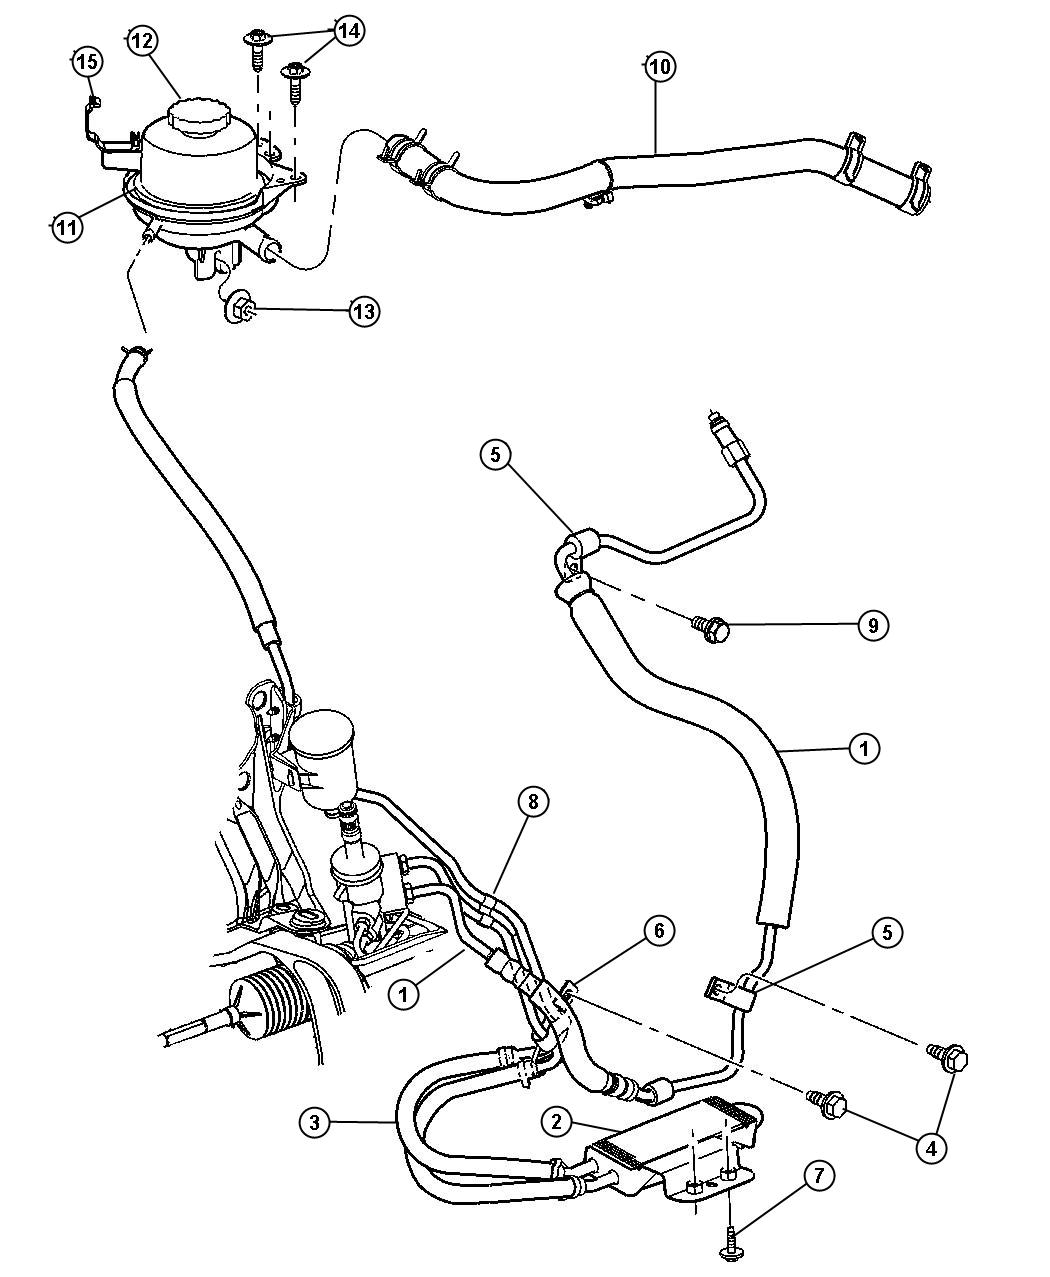 Wiring diagram on kirby vacuum switch further sportsman 500 wiring diagram on 2006 arctic cat 400